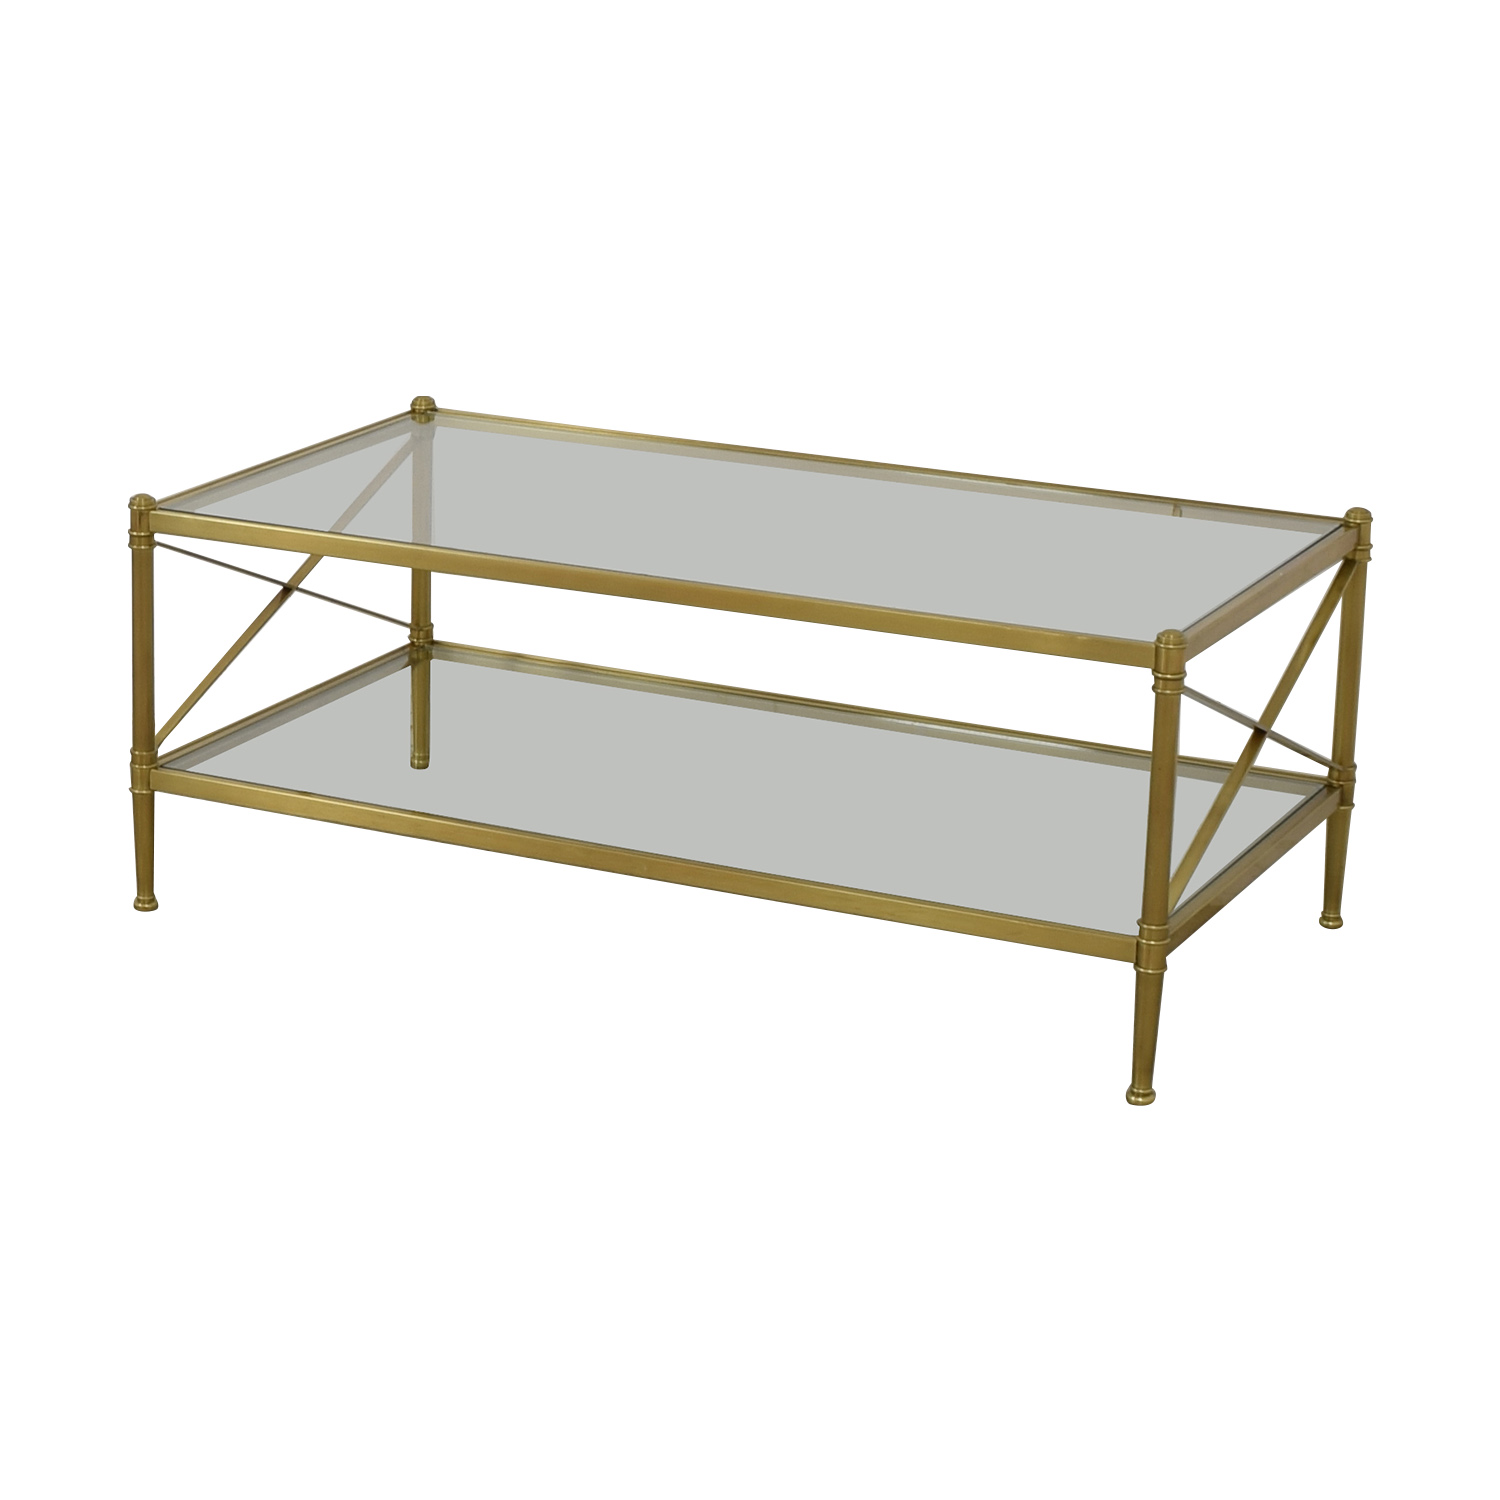 Restoration Hardware Restoration Hardware Glass and Gold Chrome Coffee Table Coffee Tables